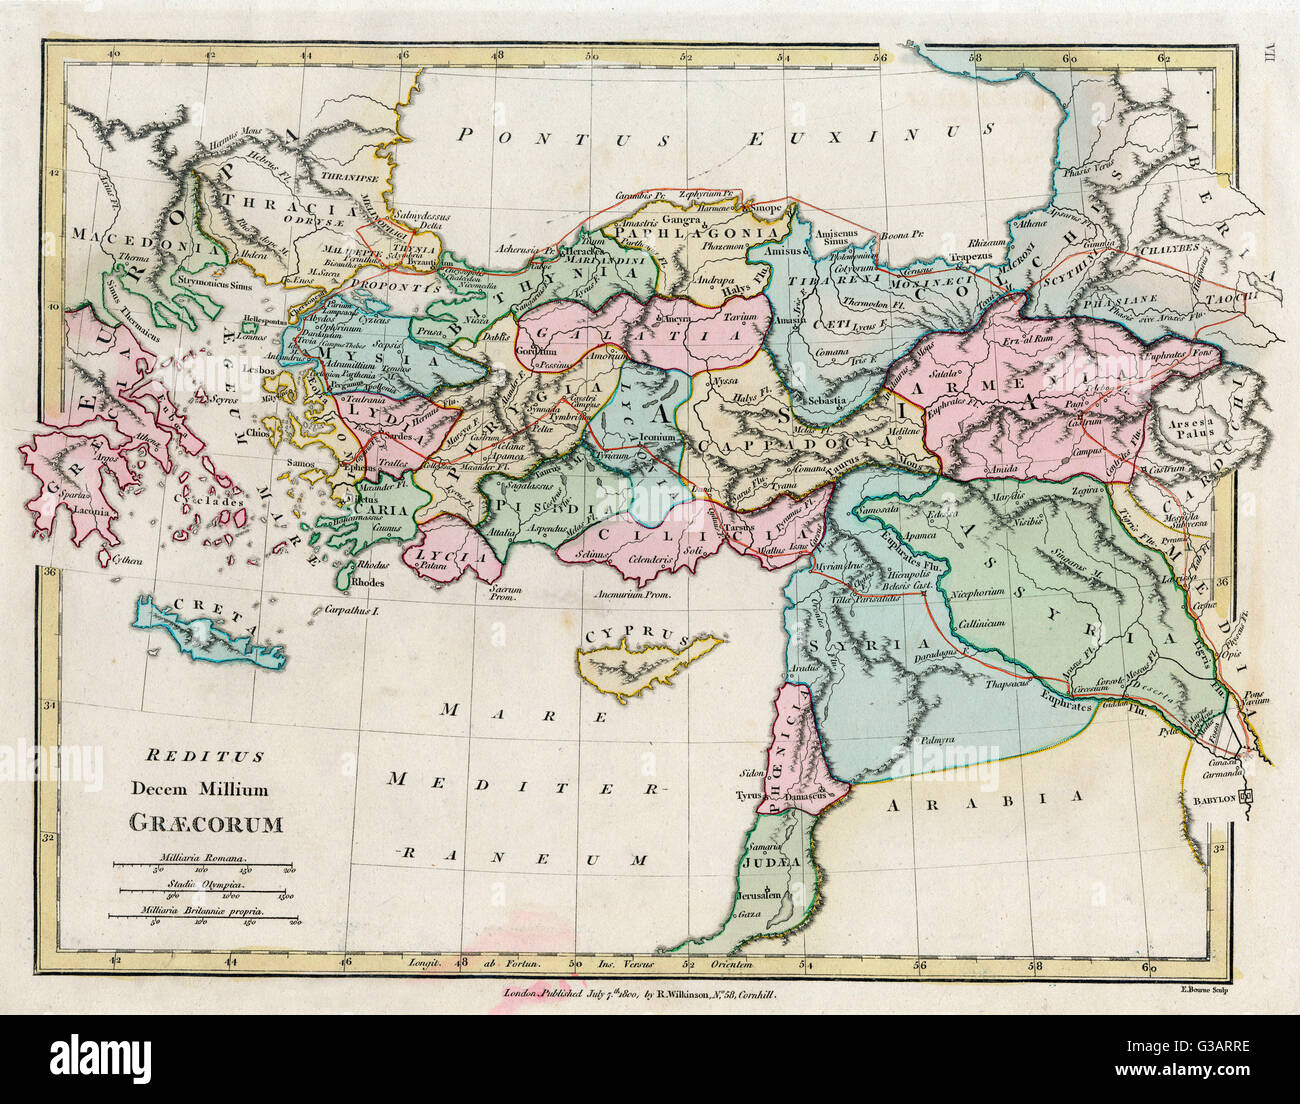 A Map Showing The Extent Of The Byzantine Empire